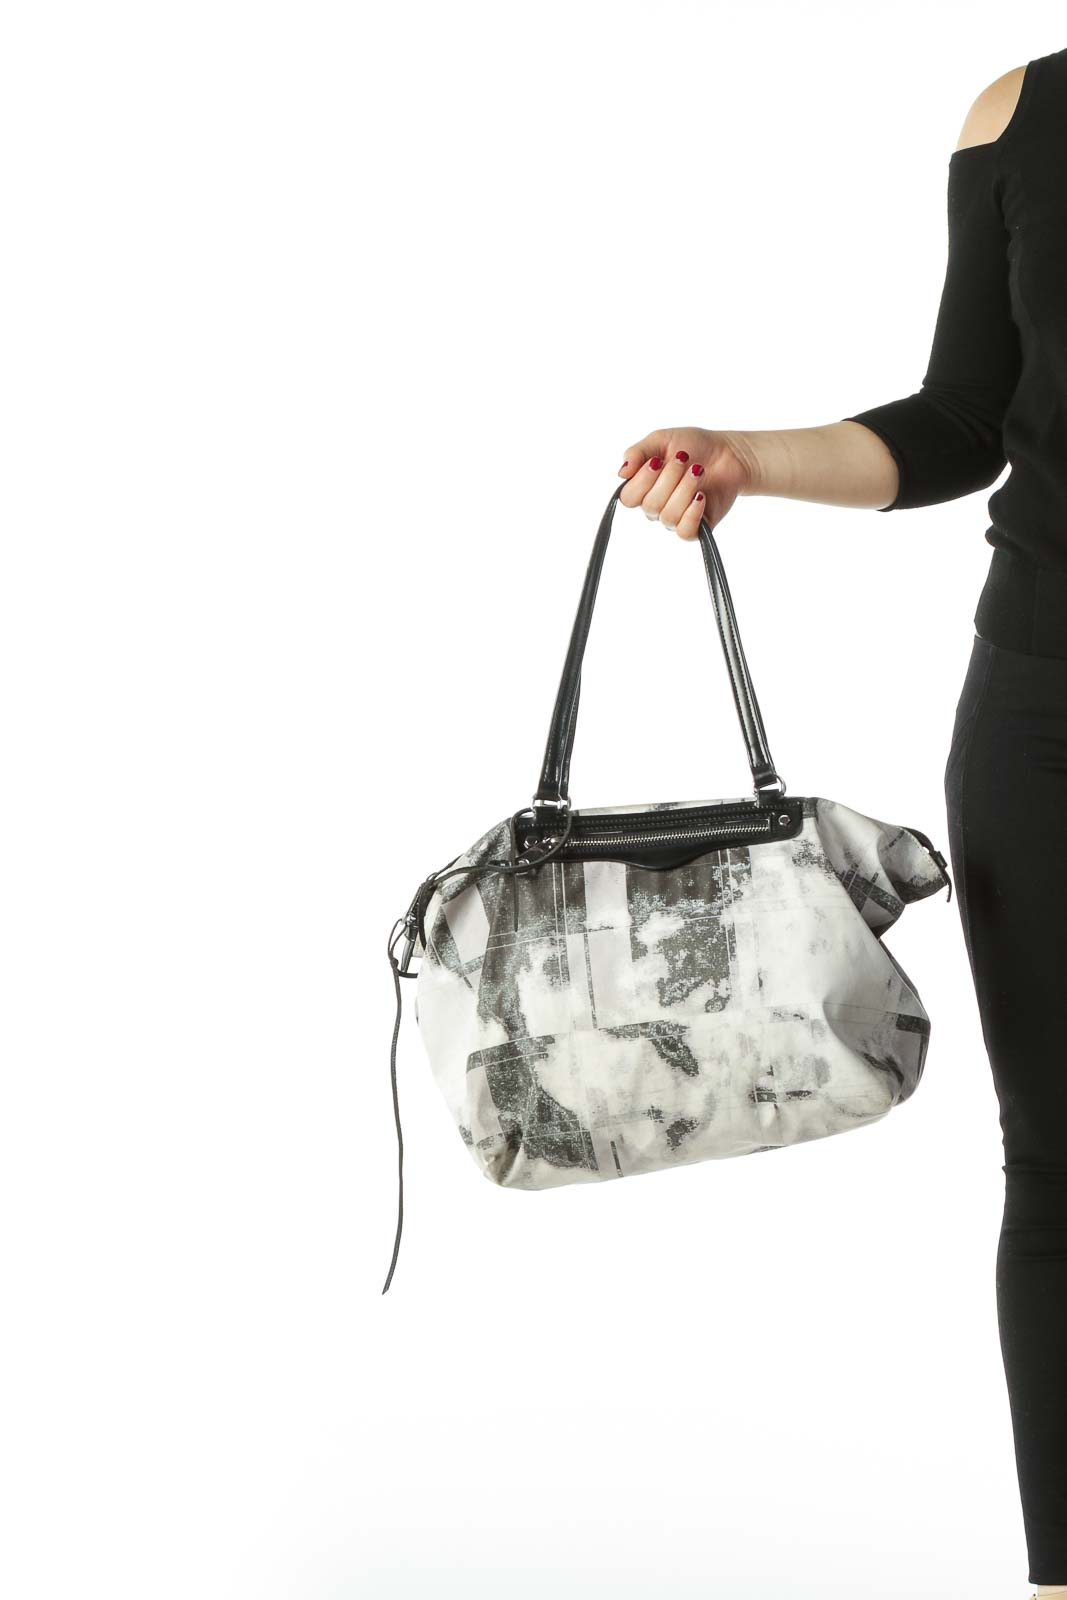 Beige Black and Grey Patterned Tote